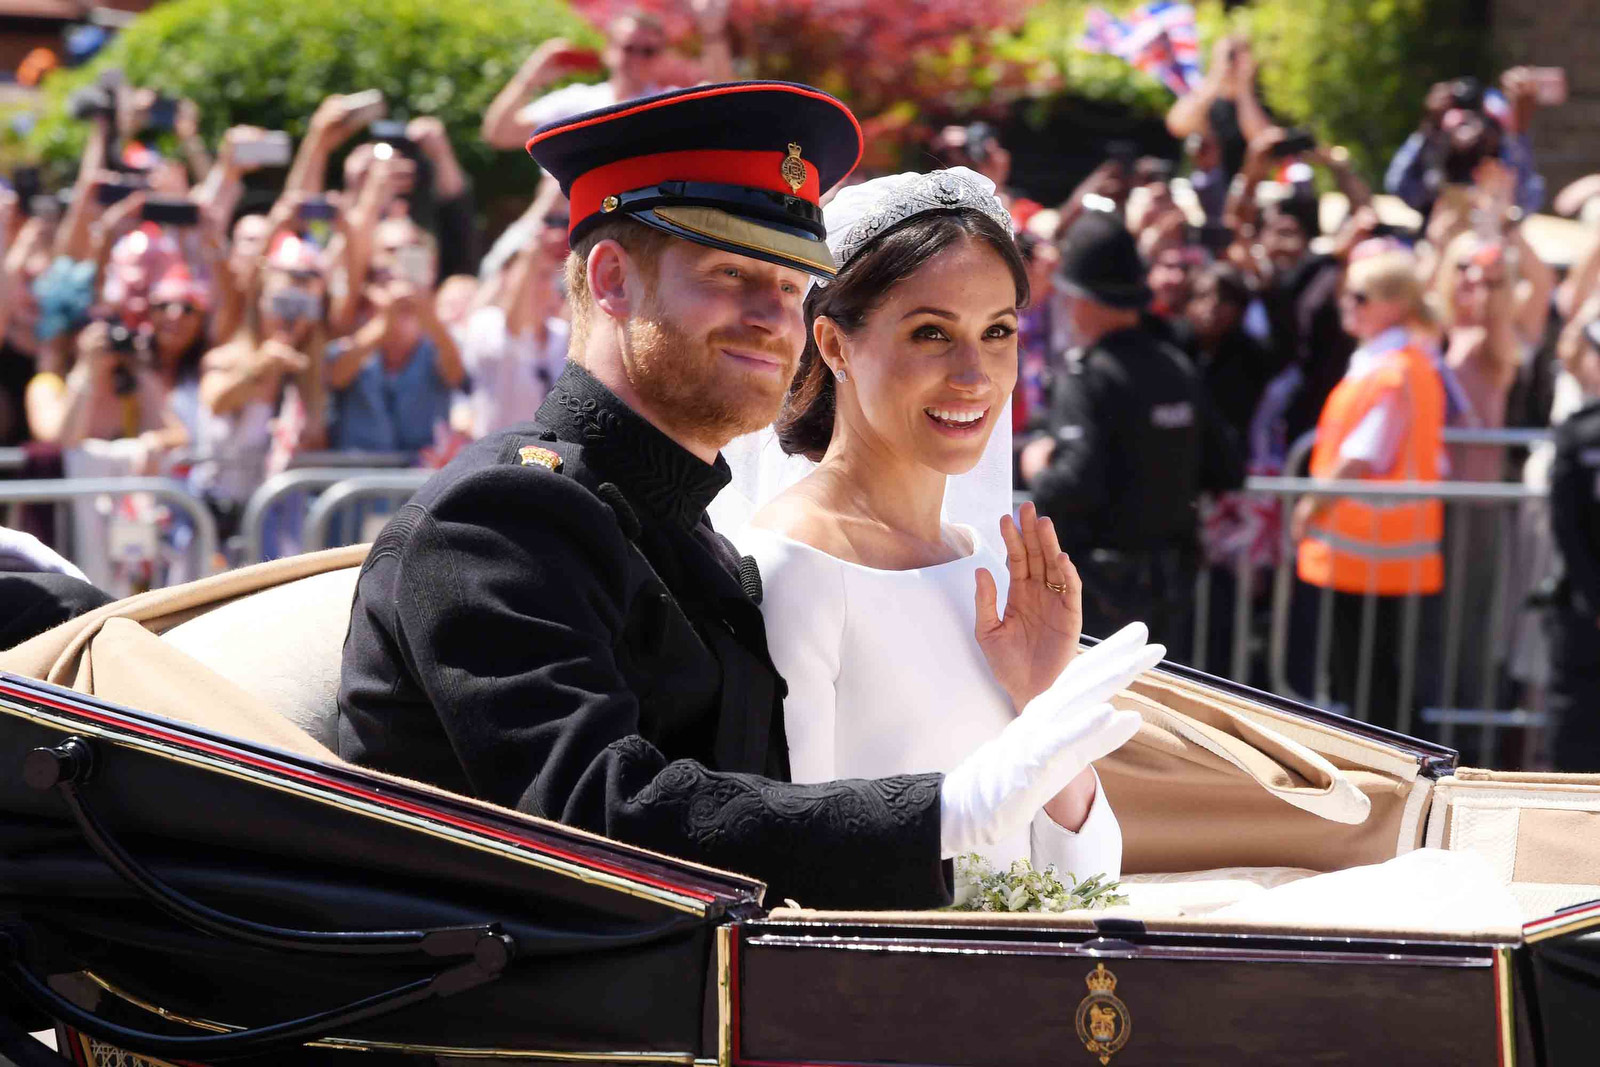 the royal wedding in pictures cnn com the royal wedding in pictures cnn com